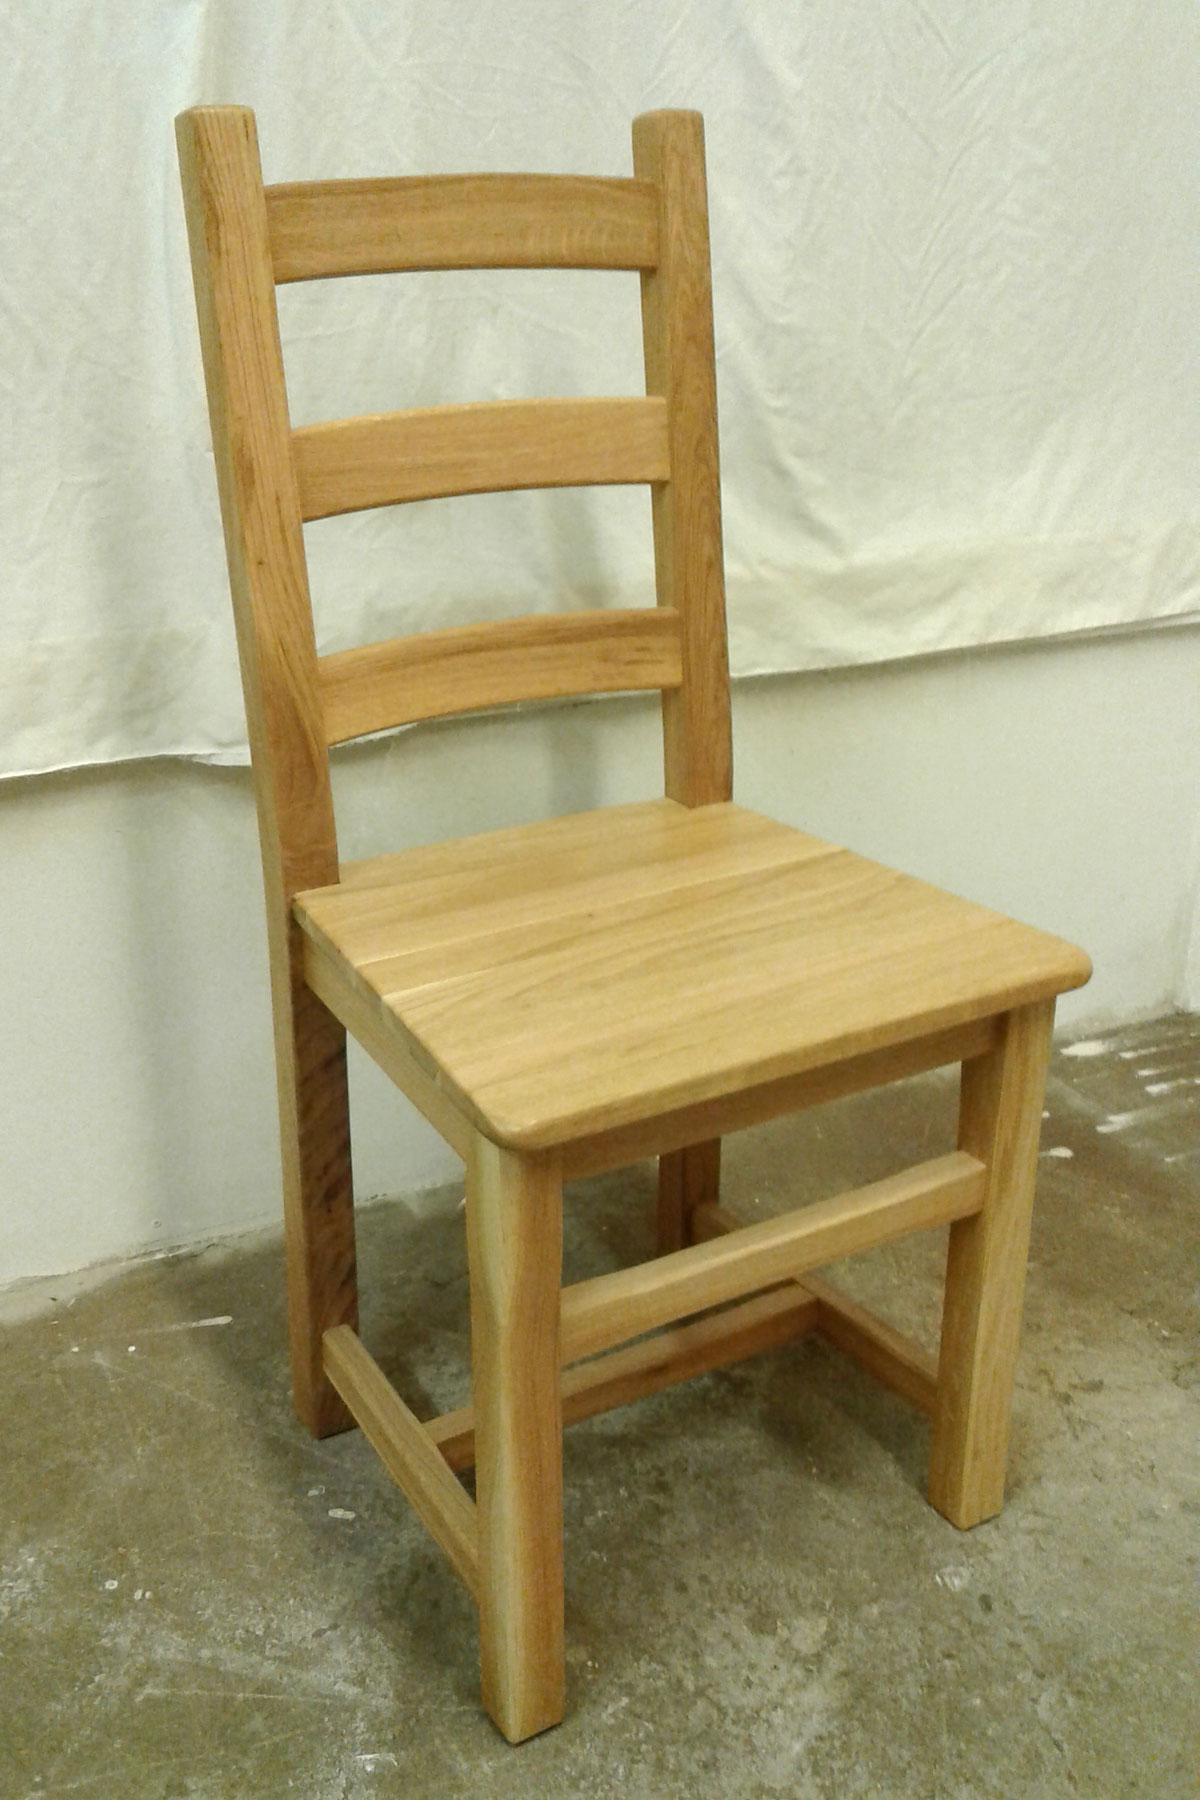 Oak chairs for sale in Barnstaple, North Devon